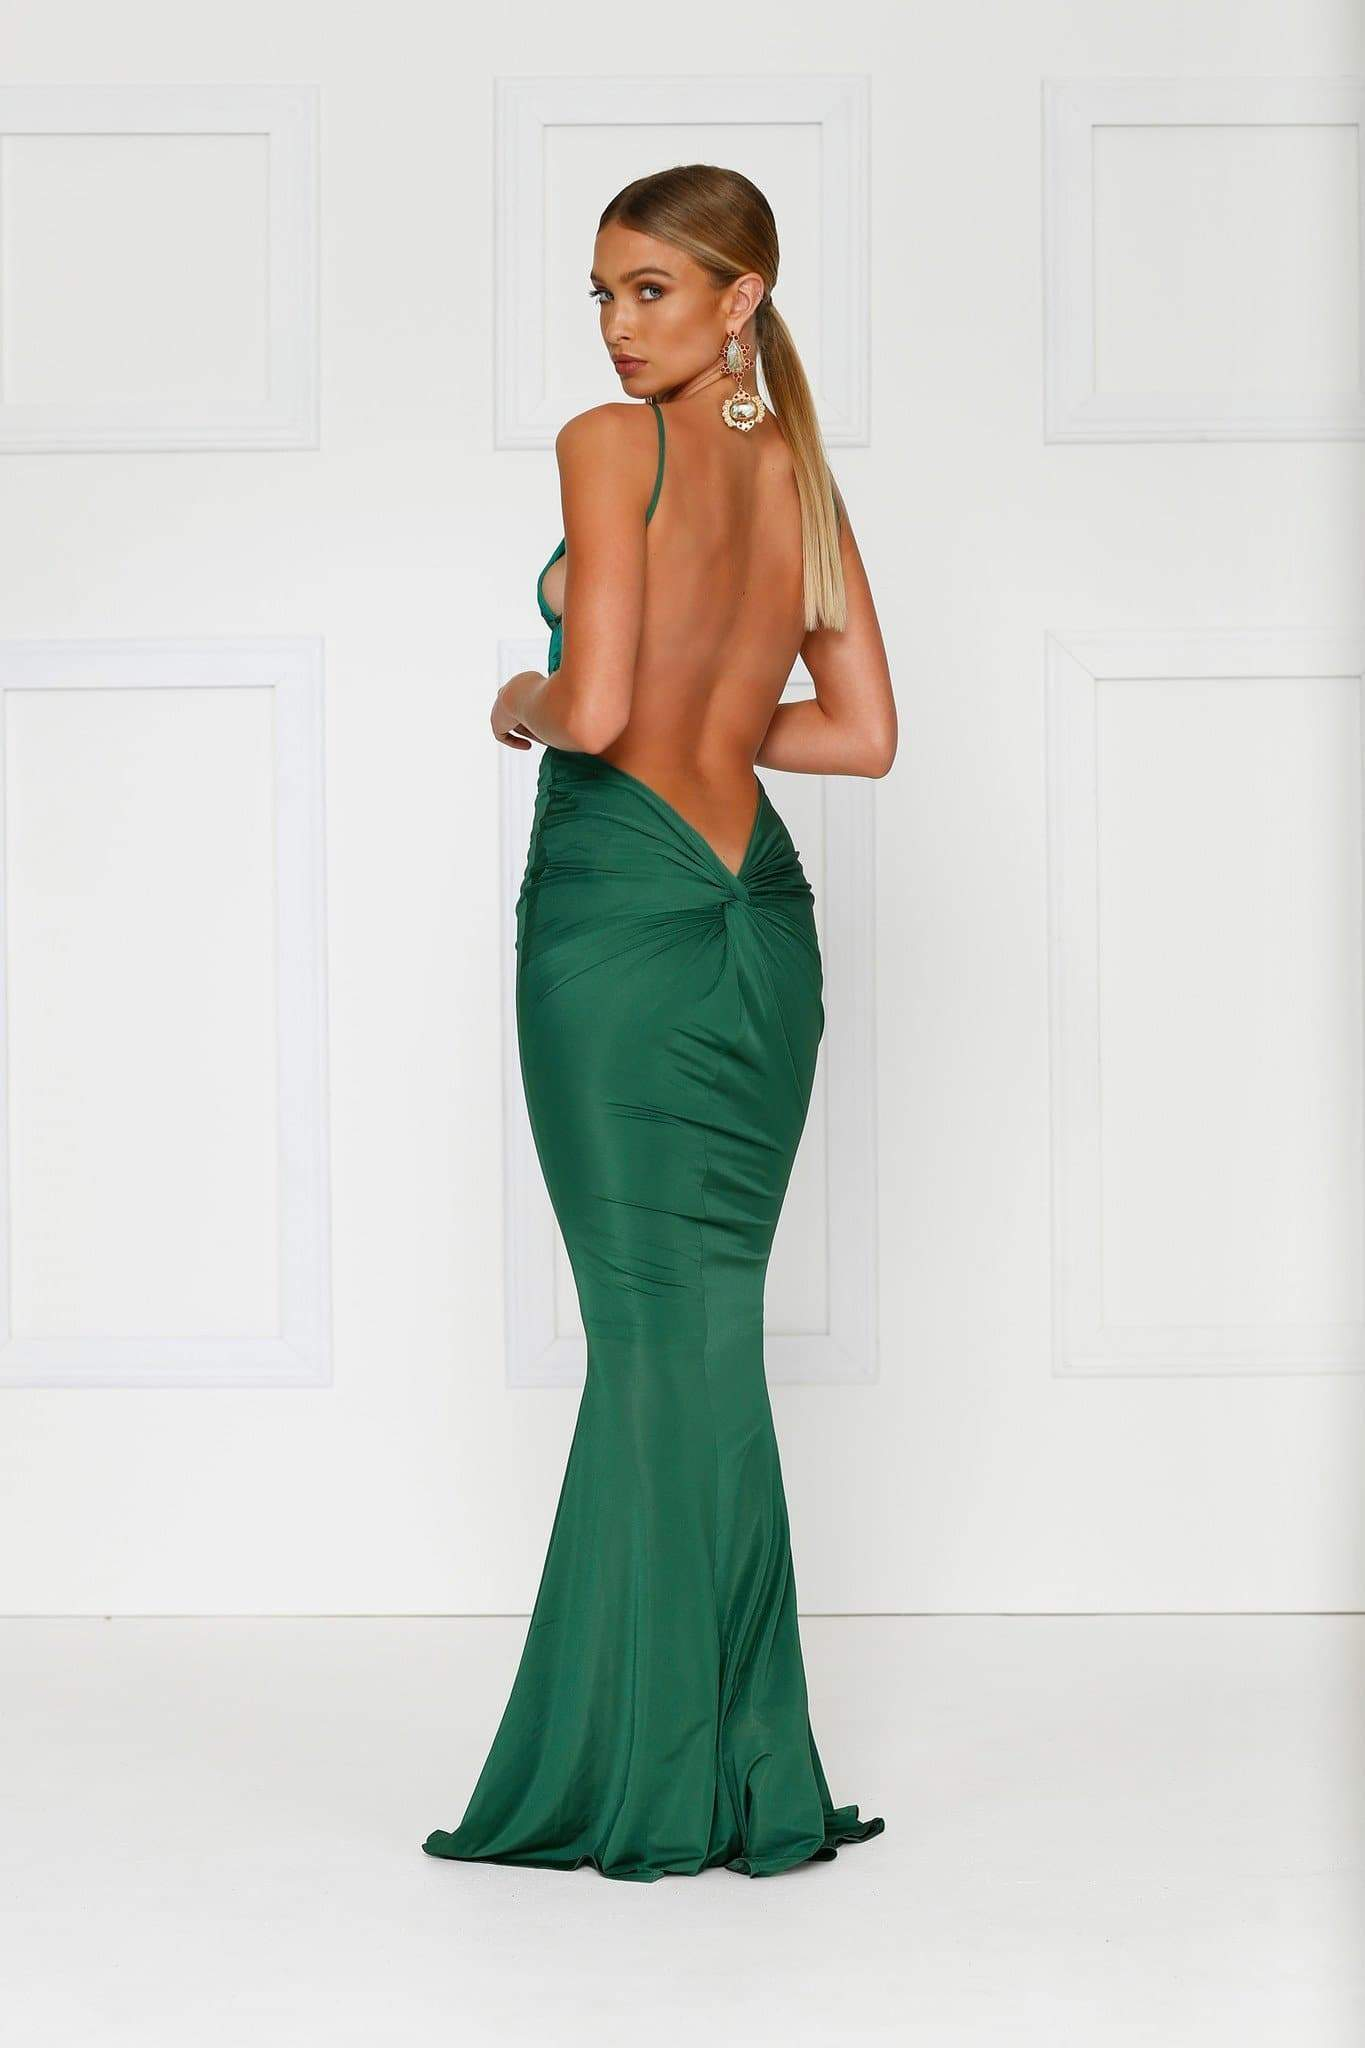 Penelope Luxe - Emerald Backless Dress with Back Knot Design